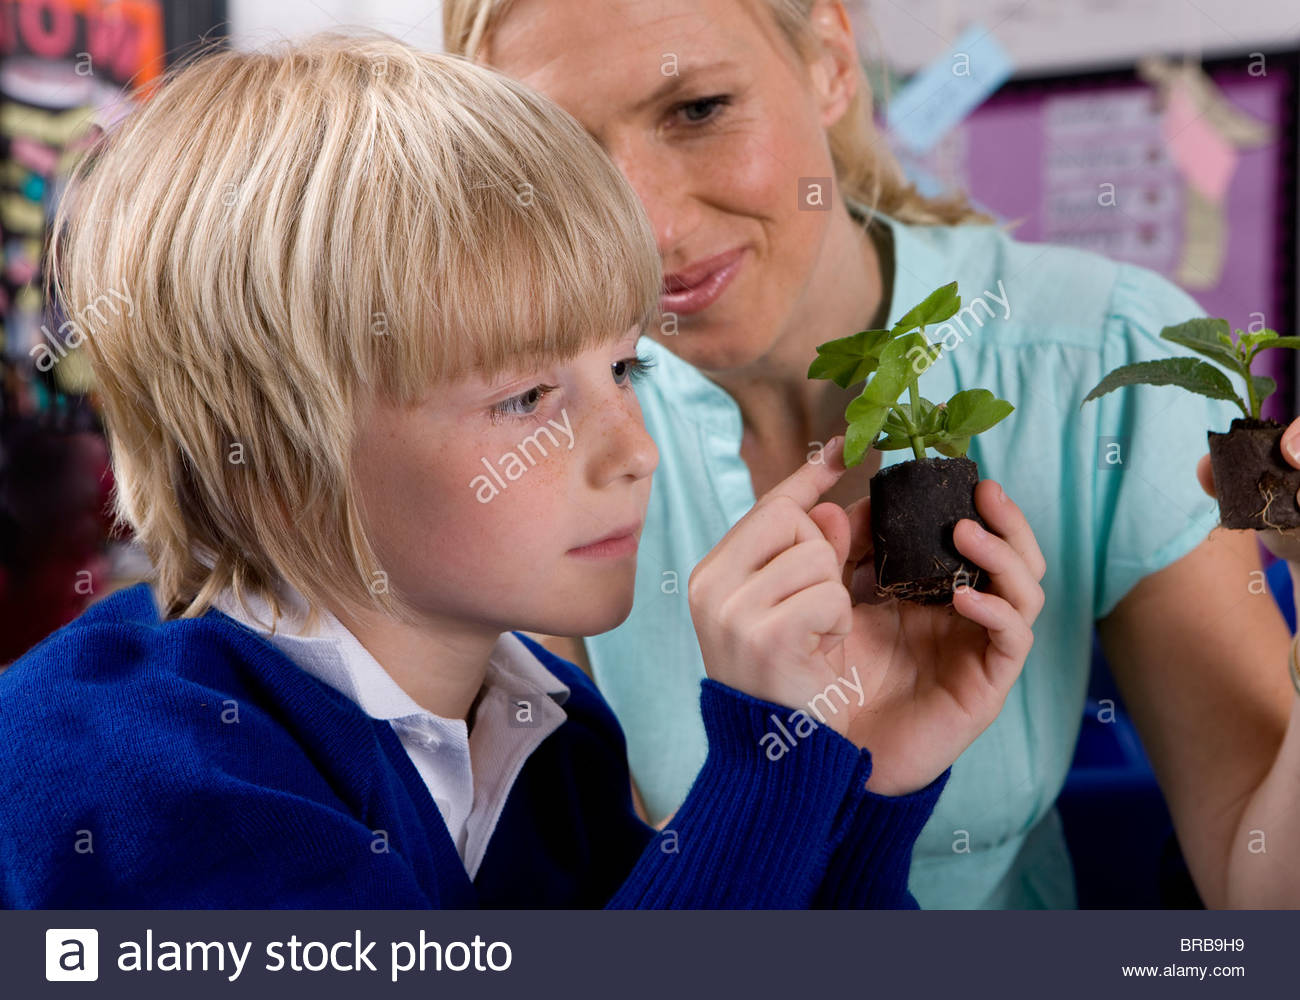 Teacher and school boy looking at plant seedlings in classroom - Stock Image